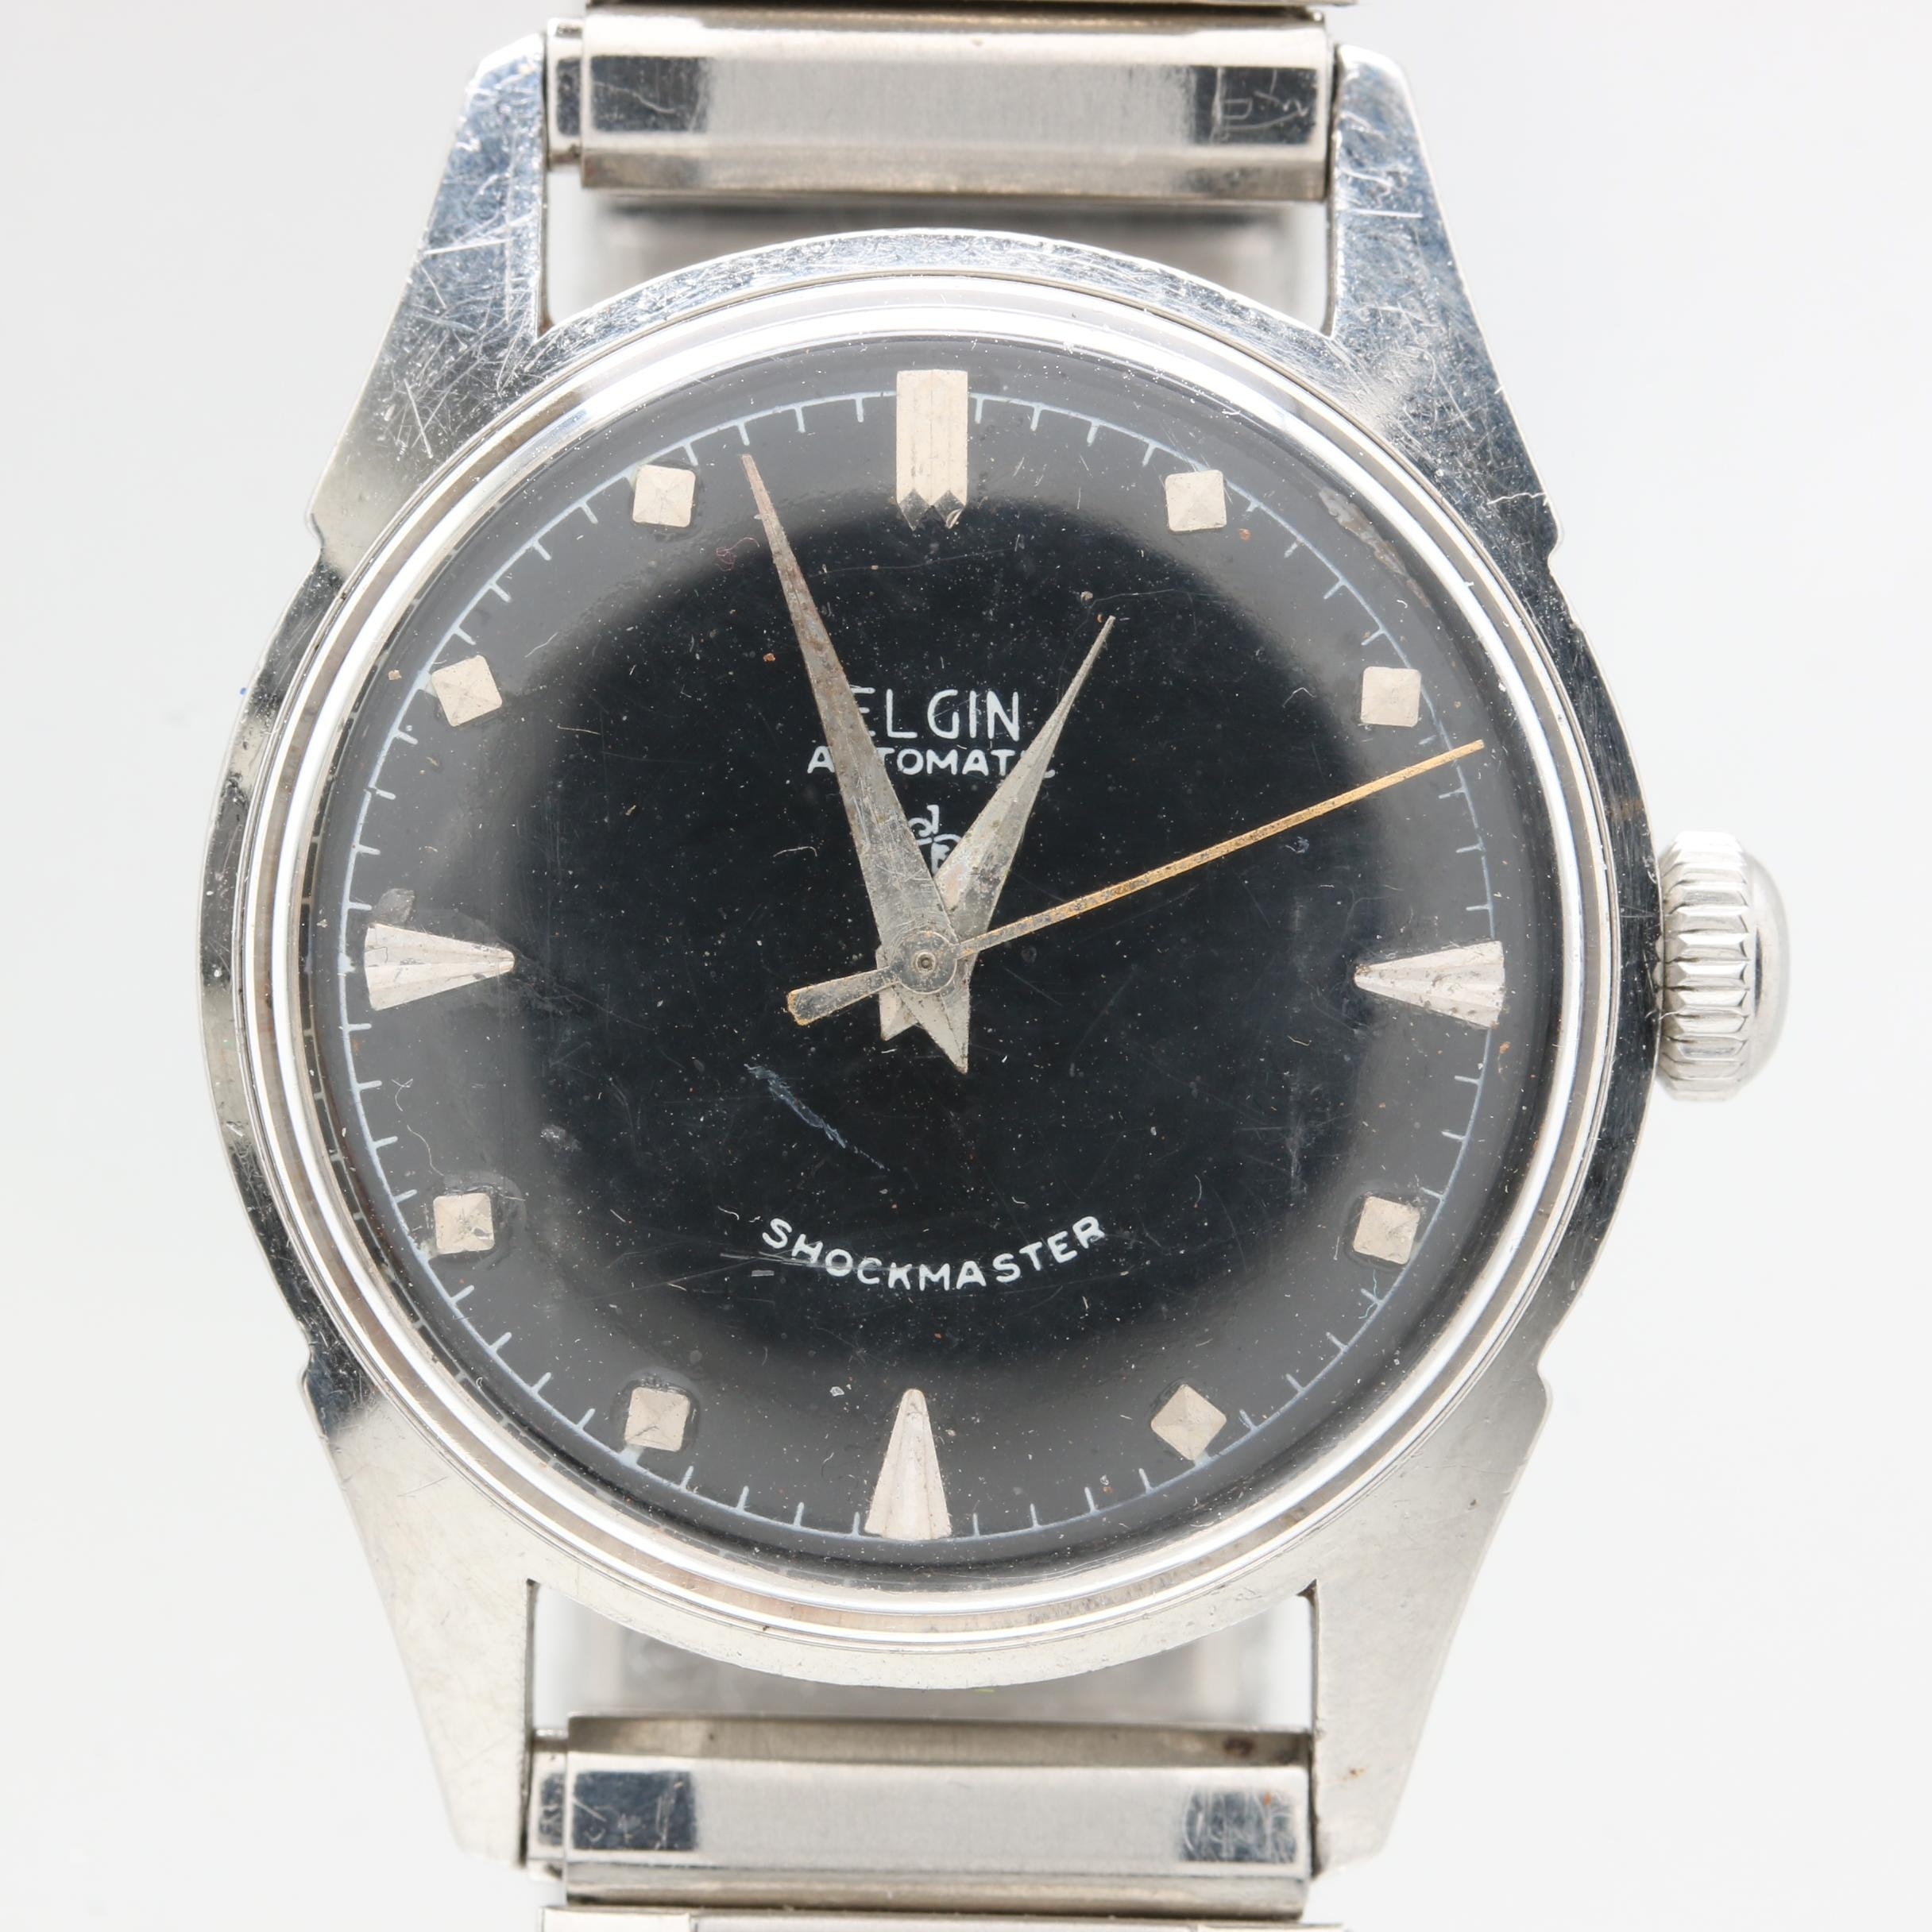 Elgin Automatic Shockmaster Stainless Steel Wristwatch